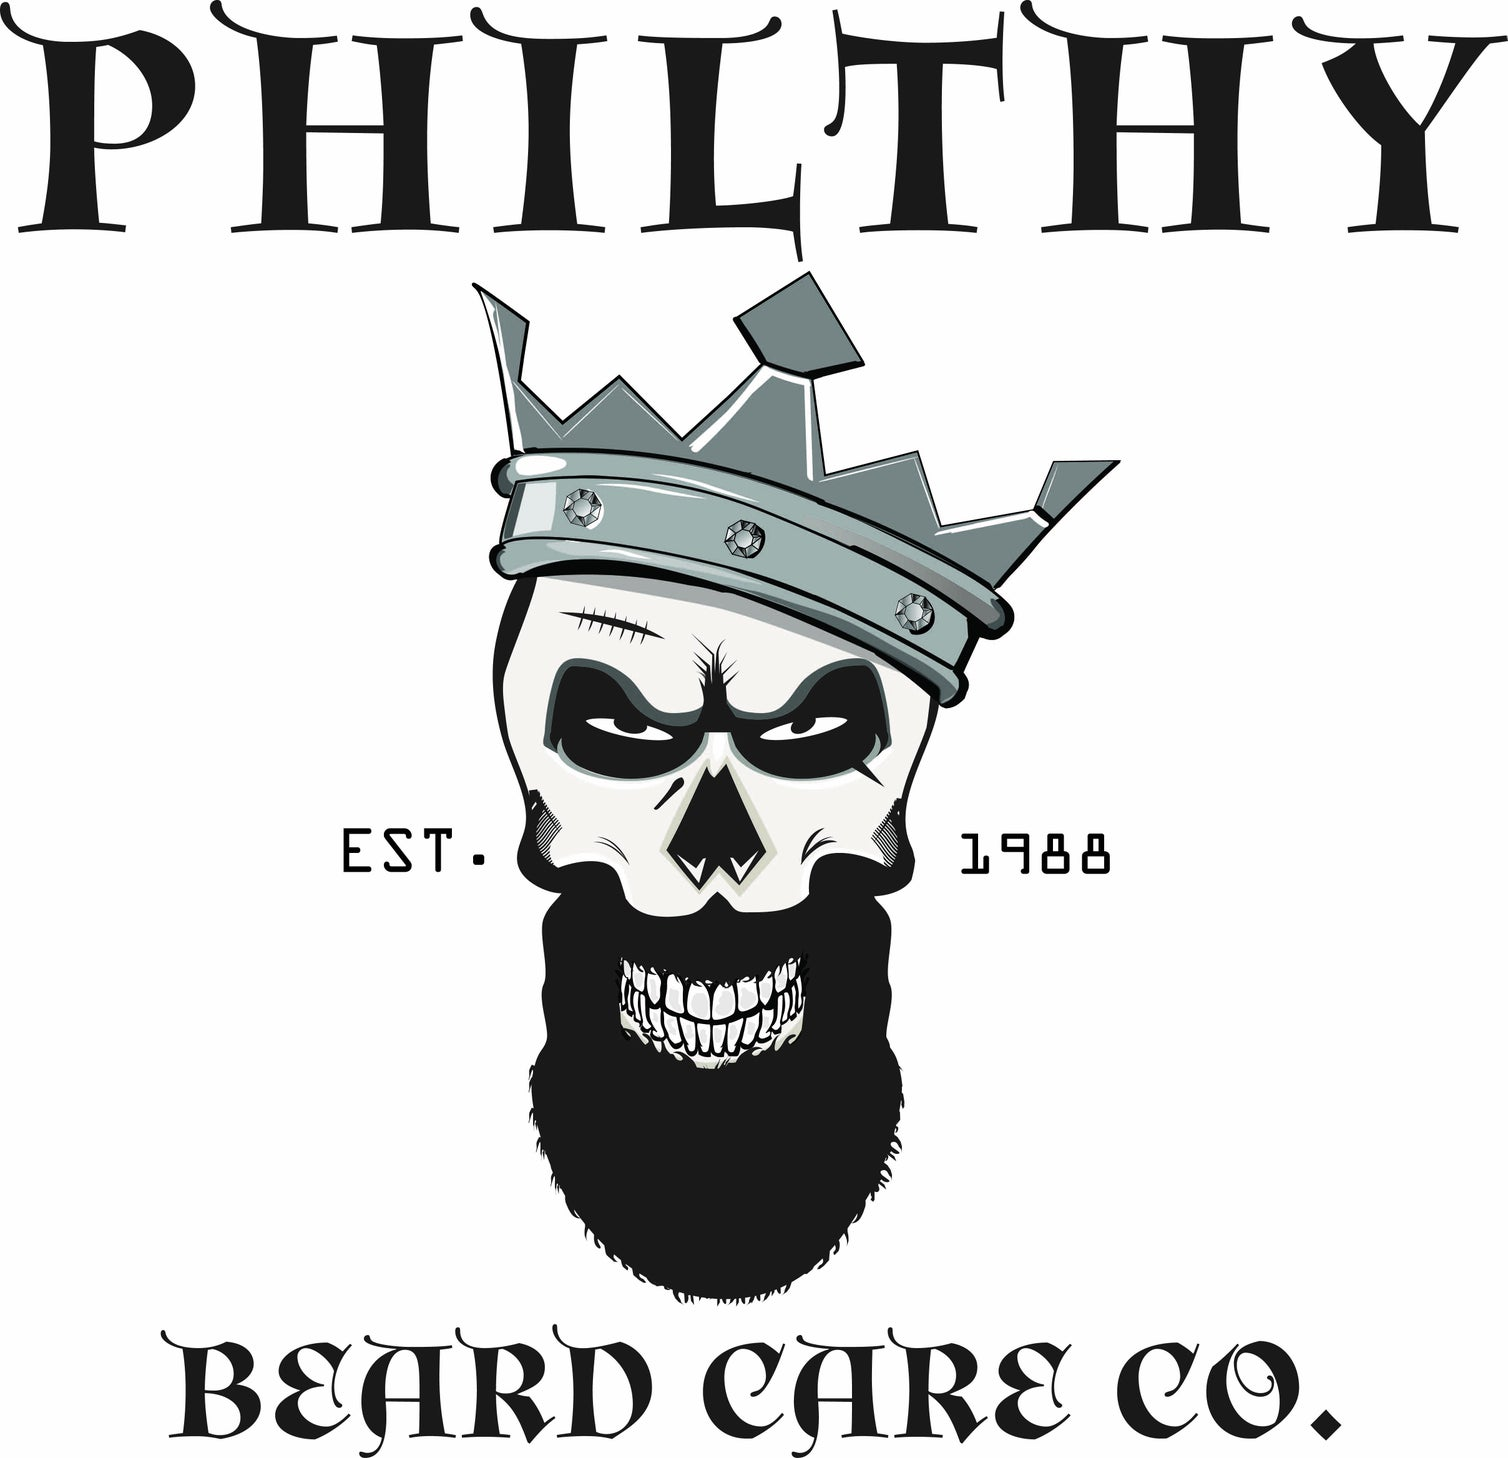 Philthy Beard Care Company